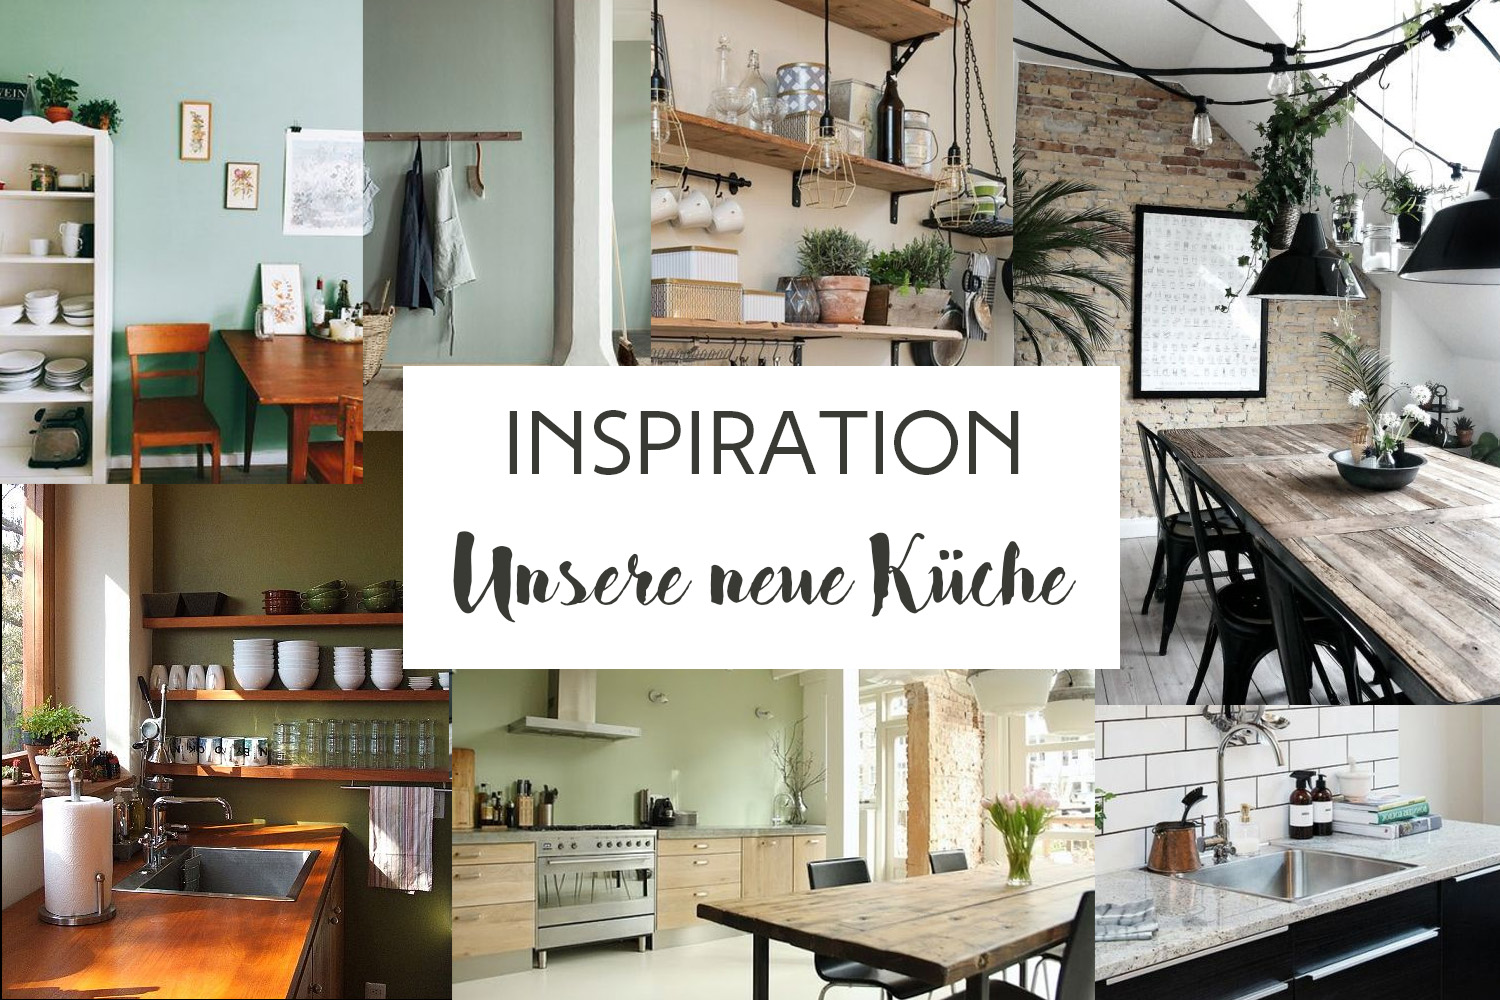 Inspiration: Unsere neue Küche - Letters & Beads